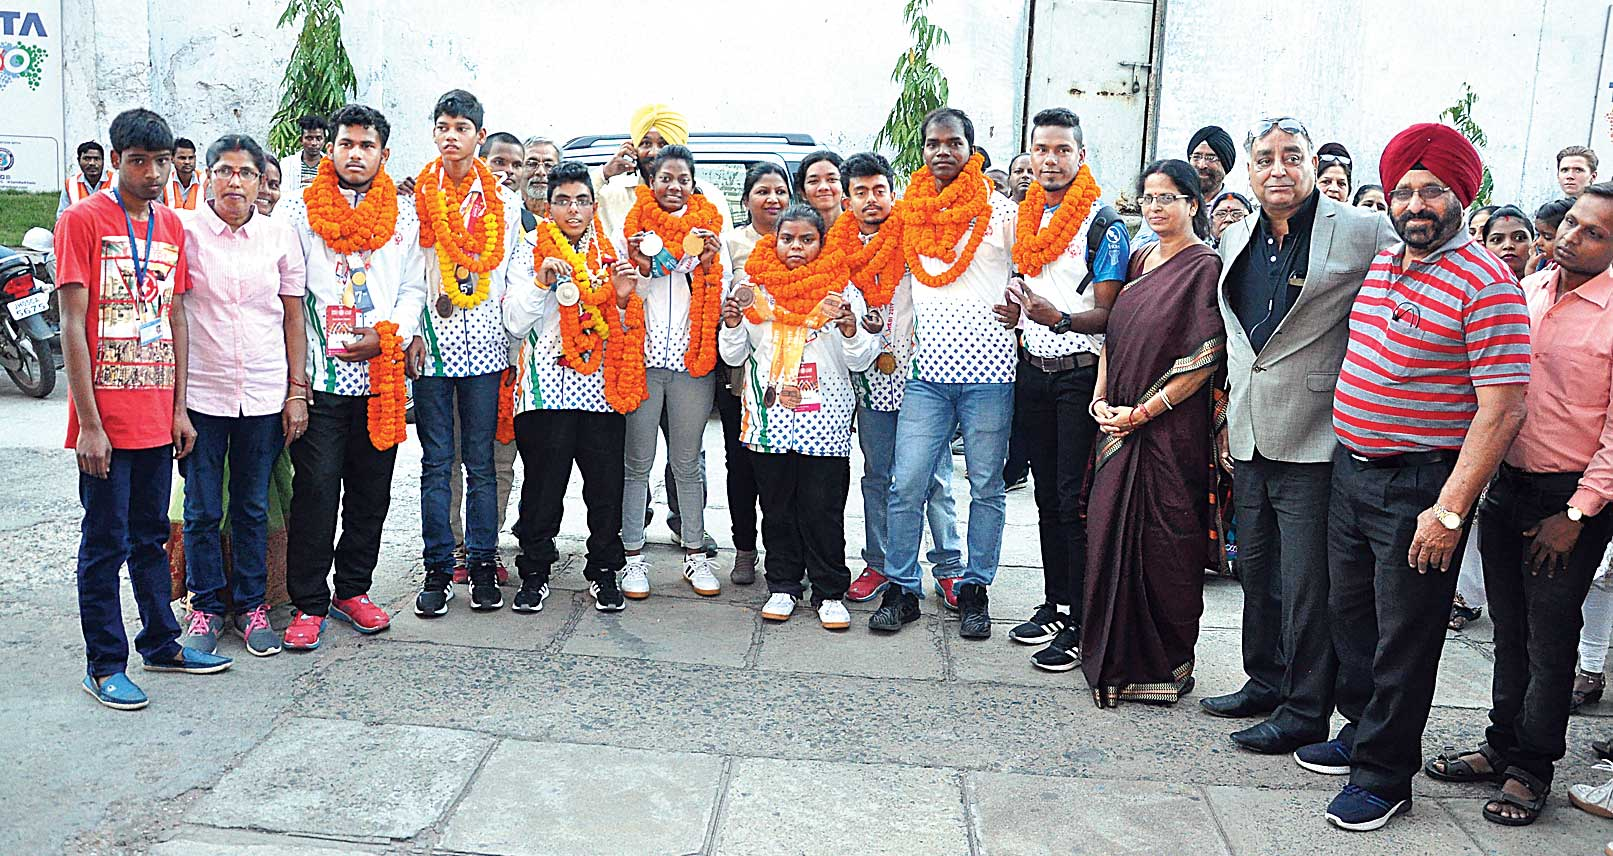 Special players Priyanshu Patro (third from left onwards), Shubham Chaurasia, N Sai Krishna, Monika Mahto, Neha Rajak, Rohit Nag and mentors Lakhan Hansda and Md Sajid pose with functionaries of Special Olympics Jharkhand upon their arrival at JRD Tata Sports Complex in Bistupur, on Saturday.